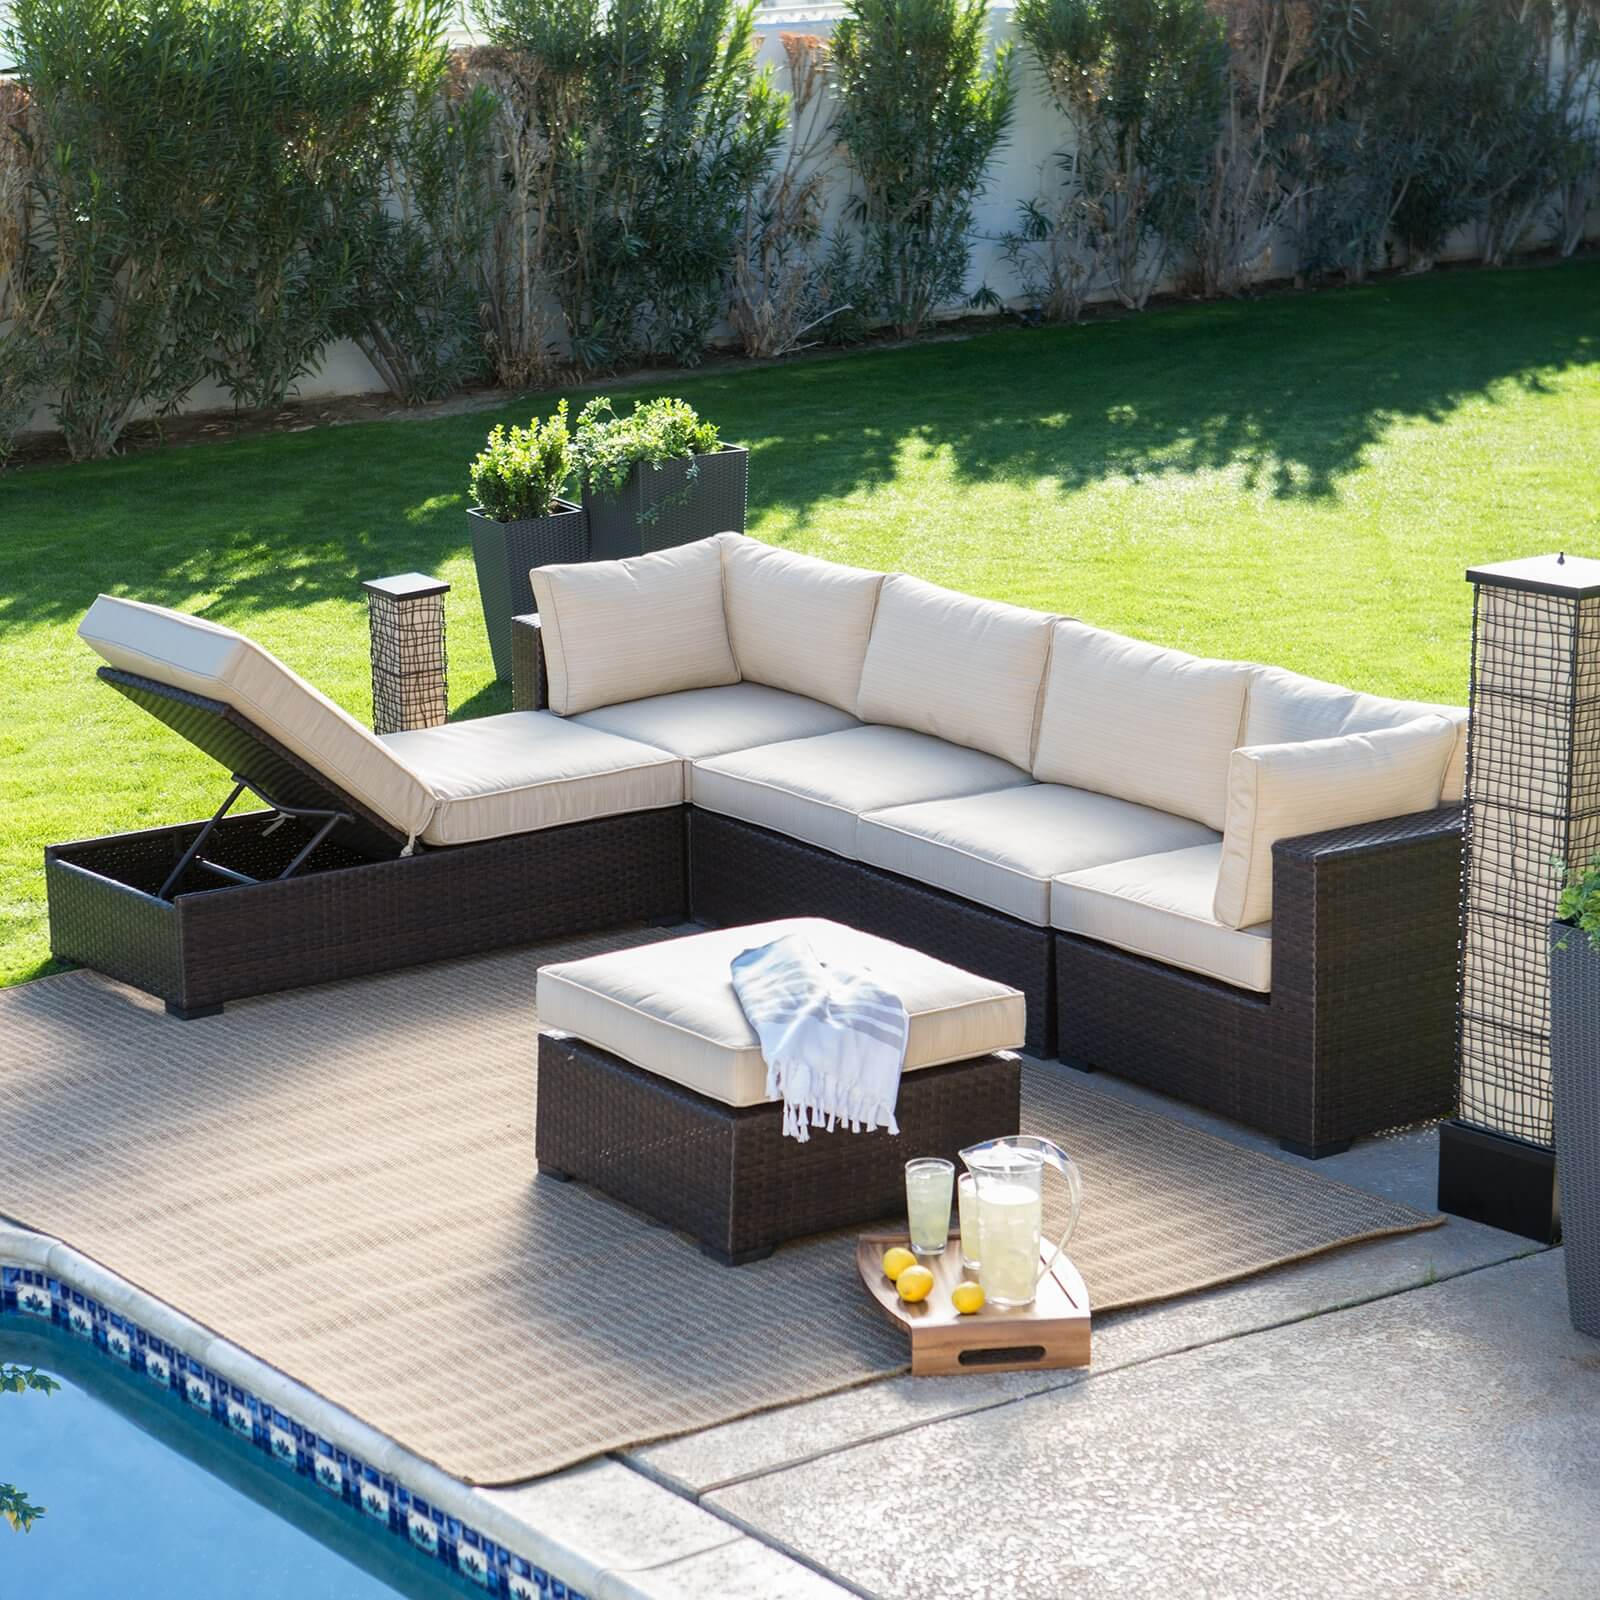 L Shaped Rattan Garden Sofa 25 Awesome Modern Brown All Weather Outdoor Patio Sectionals